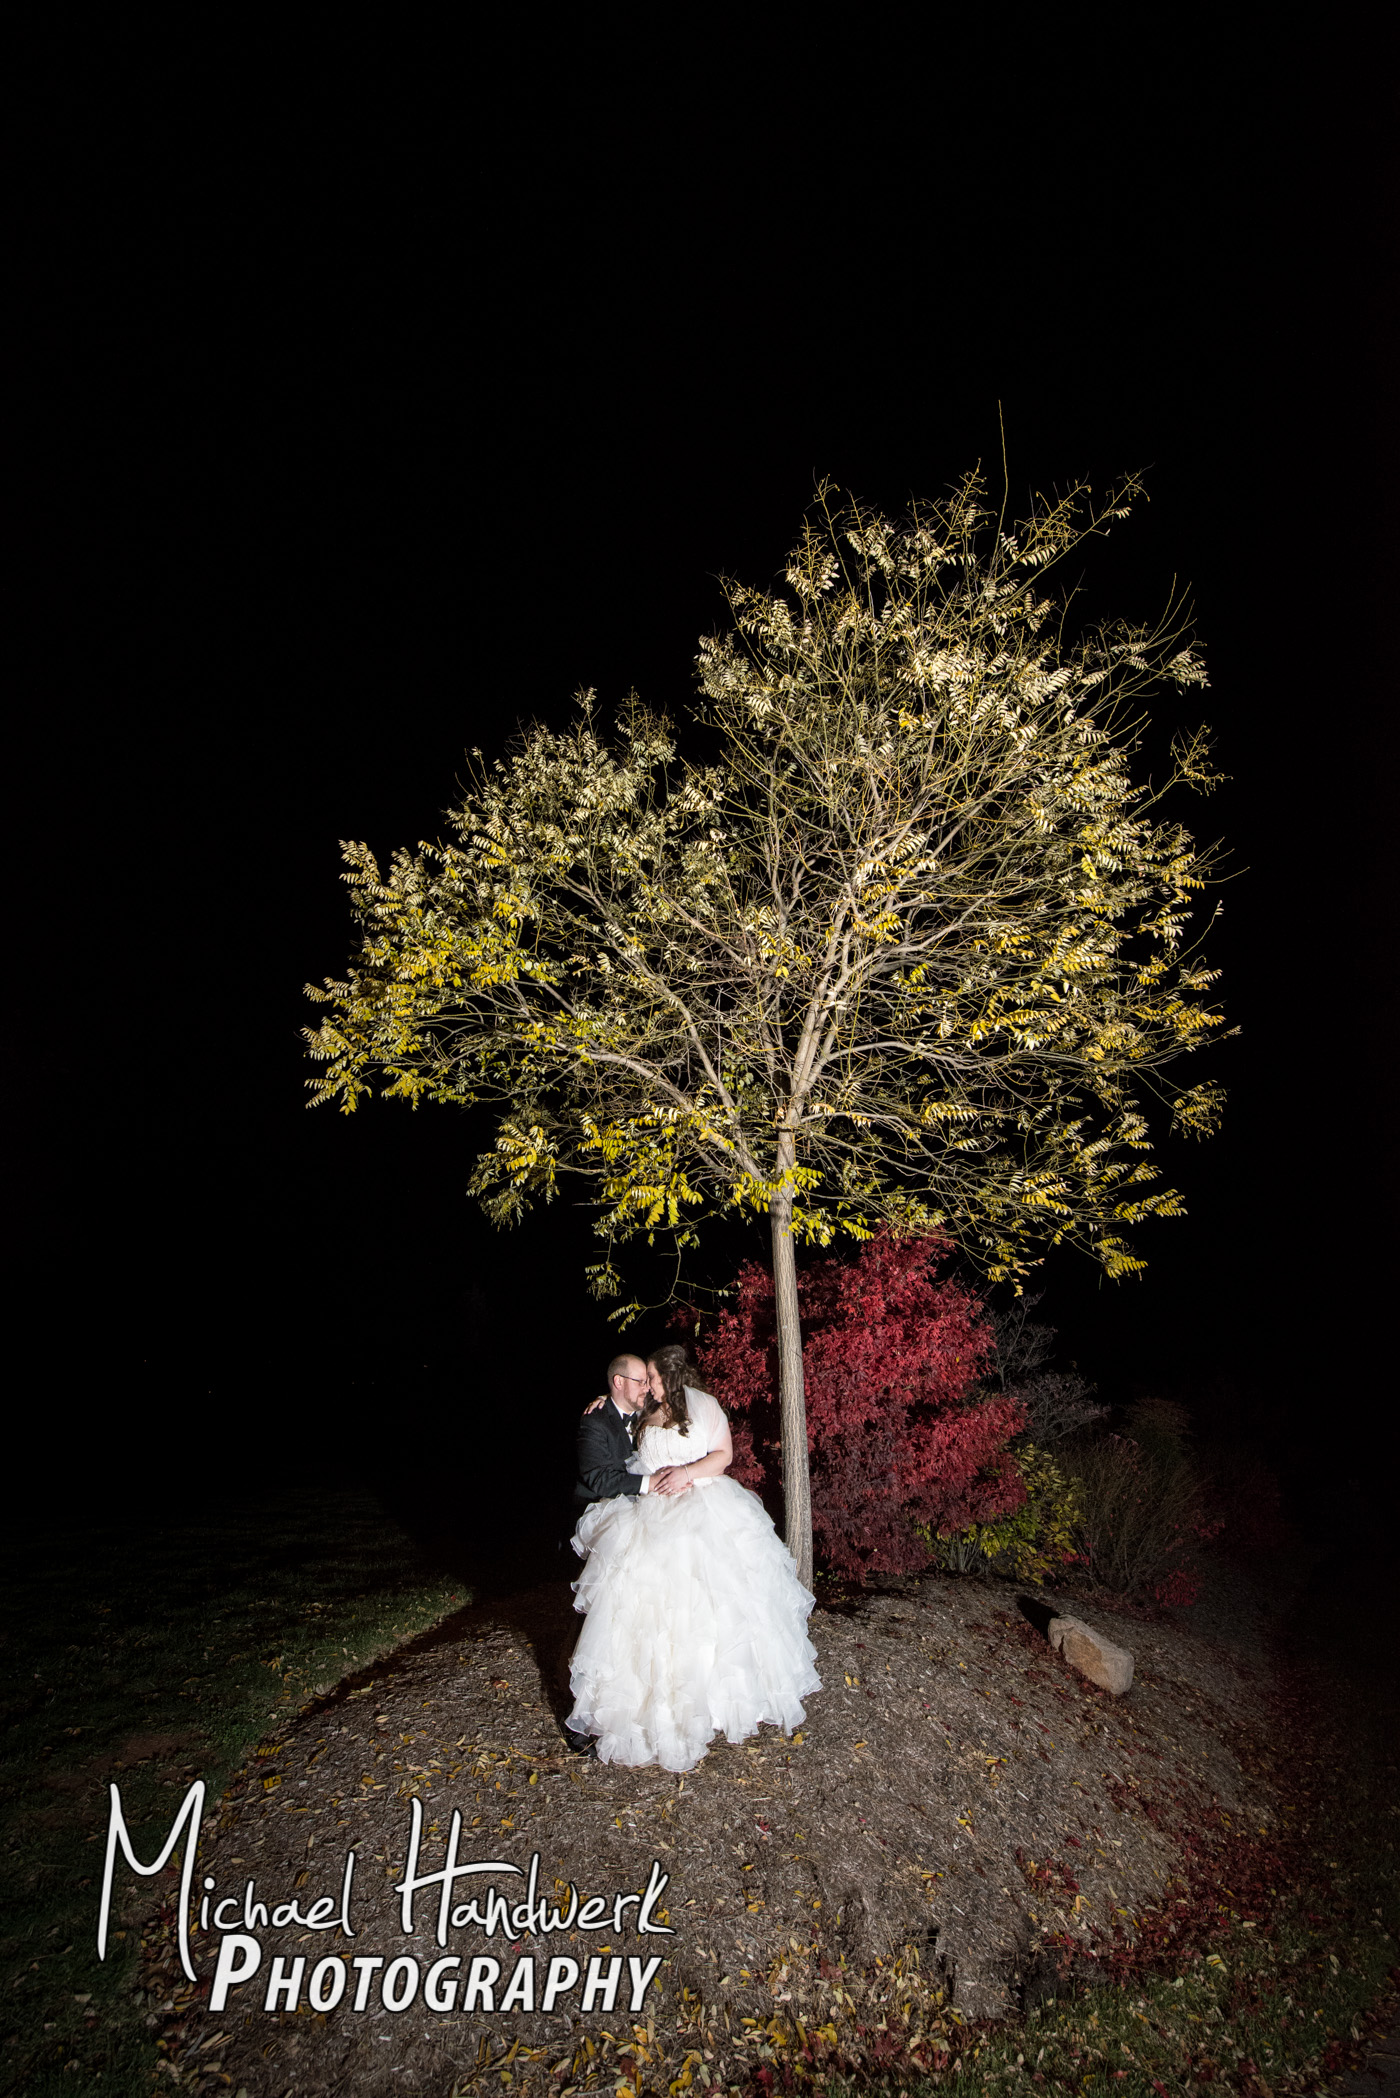 ... spring chester county wedding photographer philadelphia area wedding photographer spring city wedding photographer ... & Wedding Photographer u2013 Phoenixville PA 19460 » Best Wedding ...